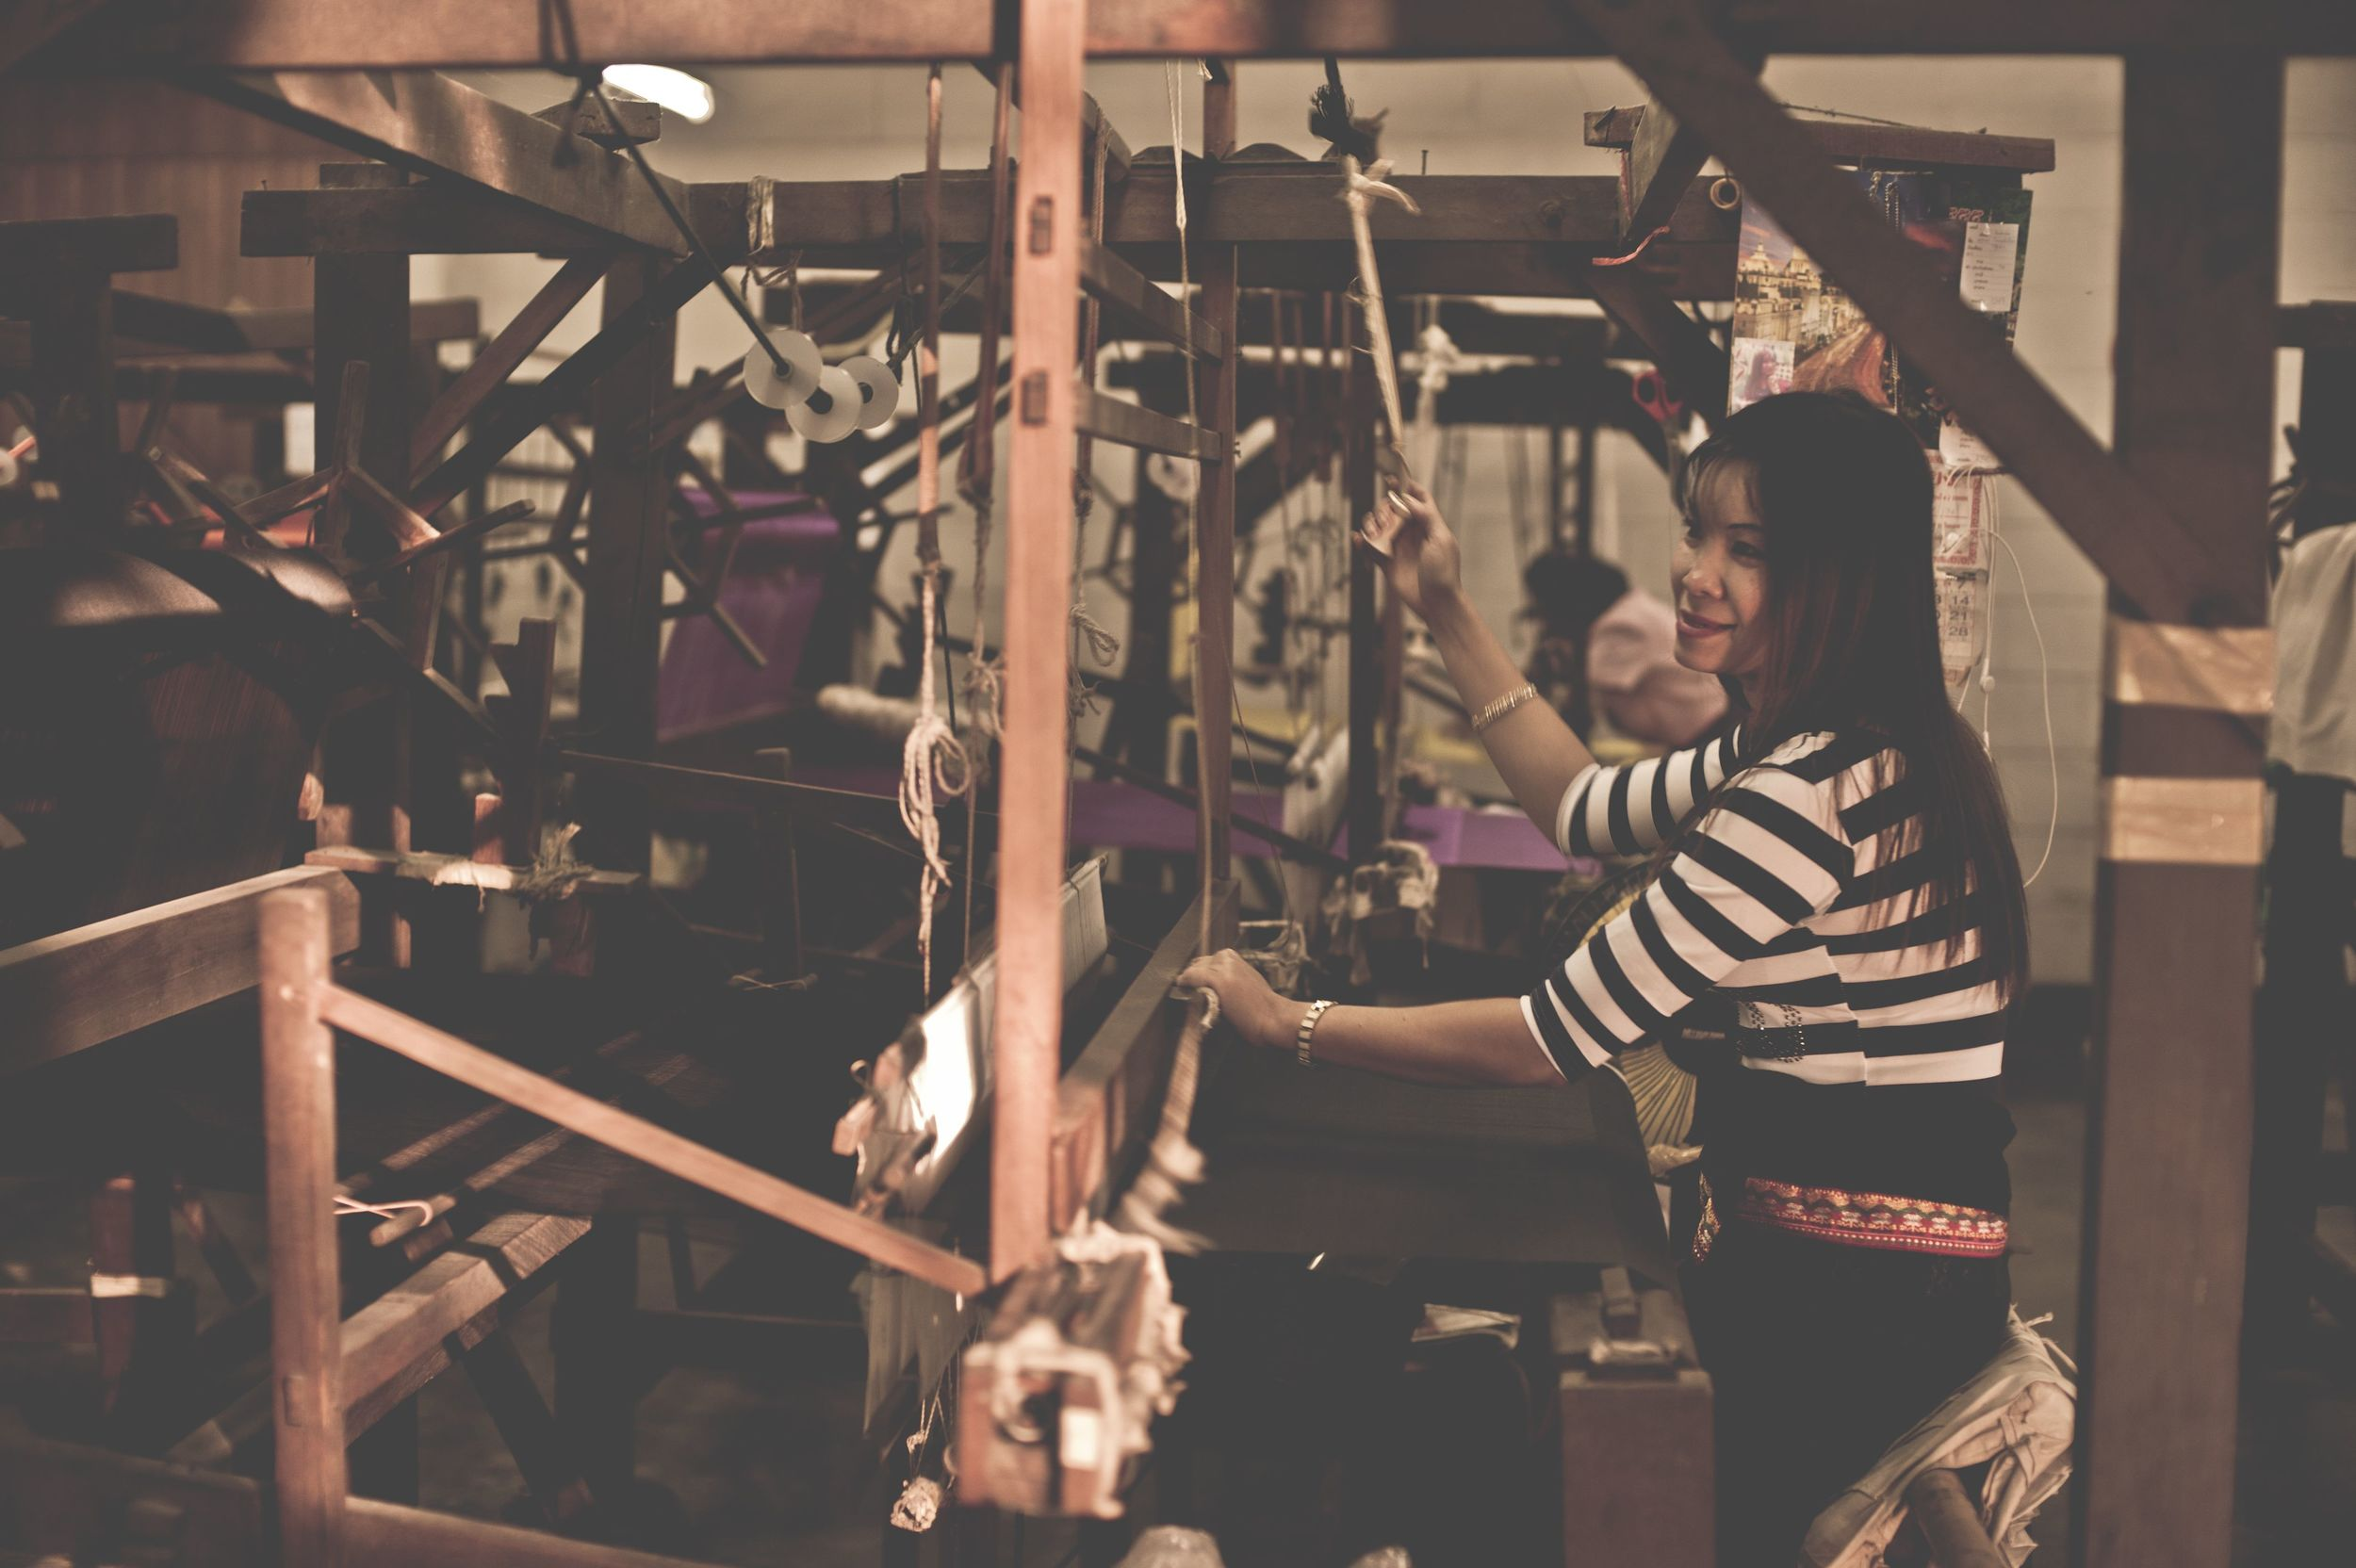 Nineteenth Century-style  looms in a traditional silk weaving factory, Chiang Mai